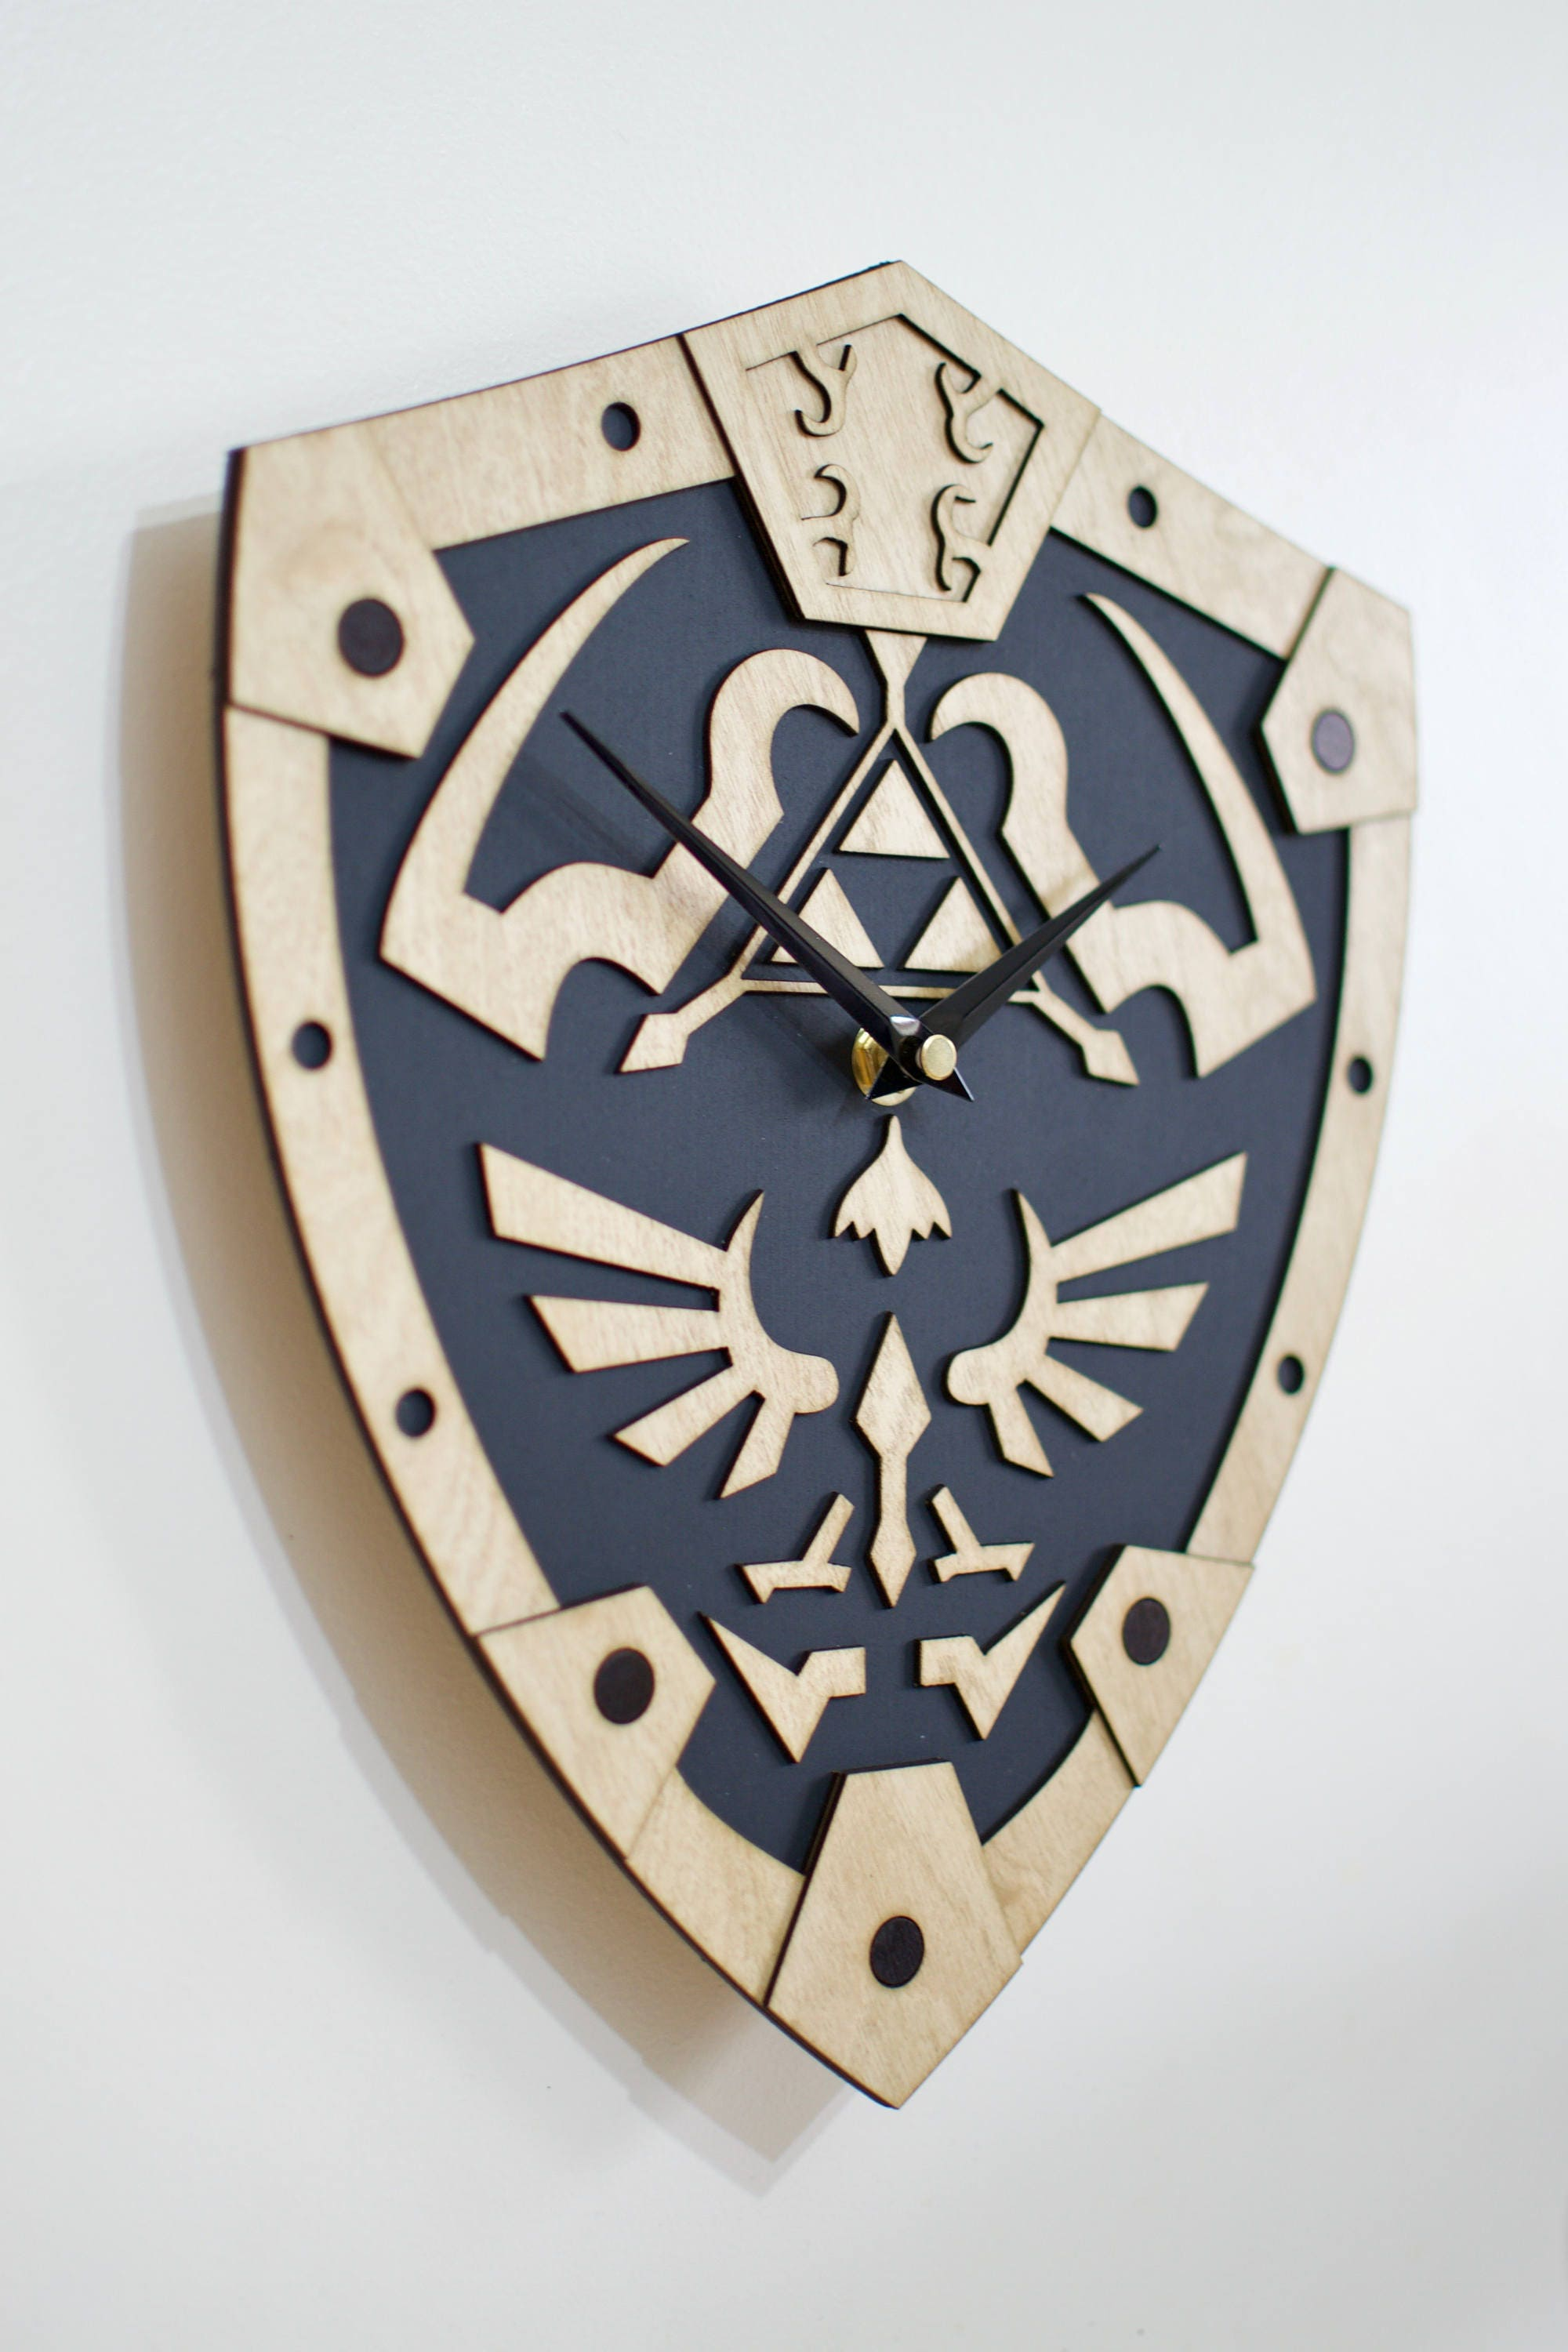 The Legend Of Zelda Inspired Wall Clock Hylian Shield